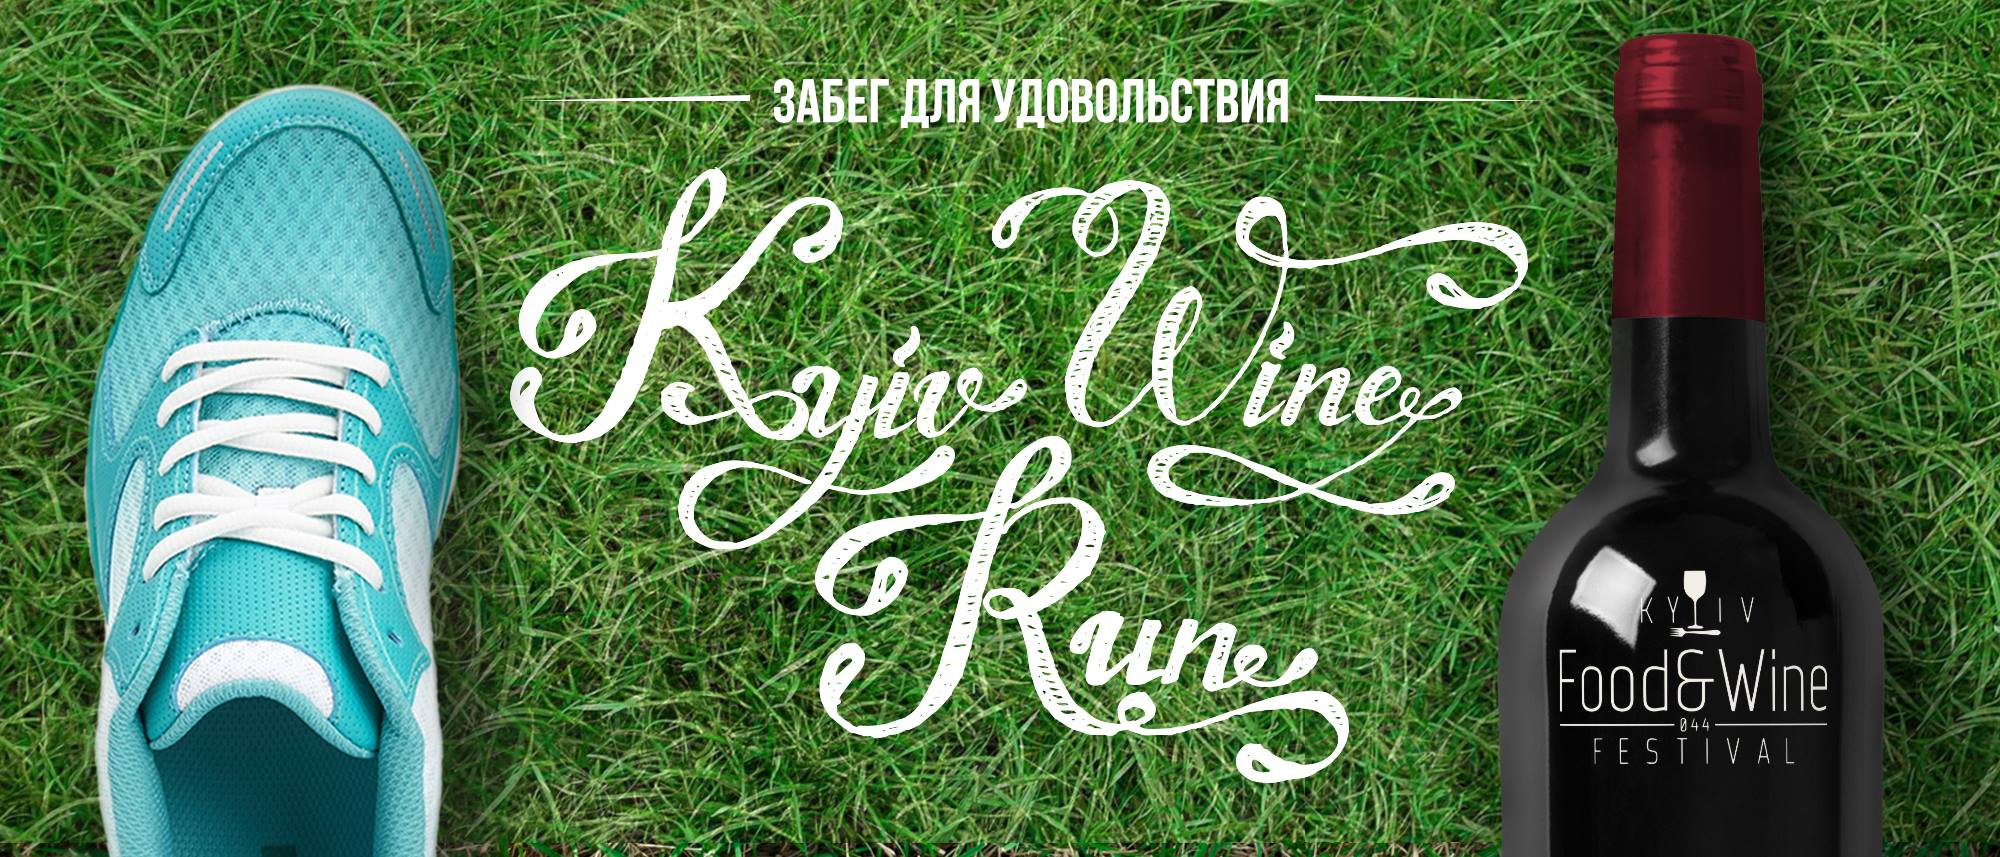 Kyiv Food and Wine Festival